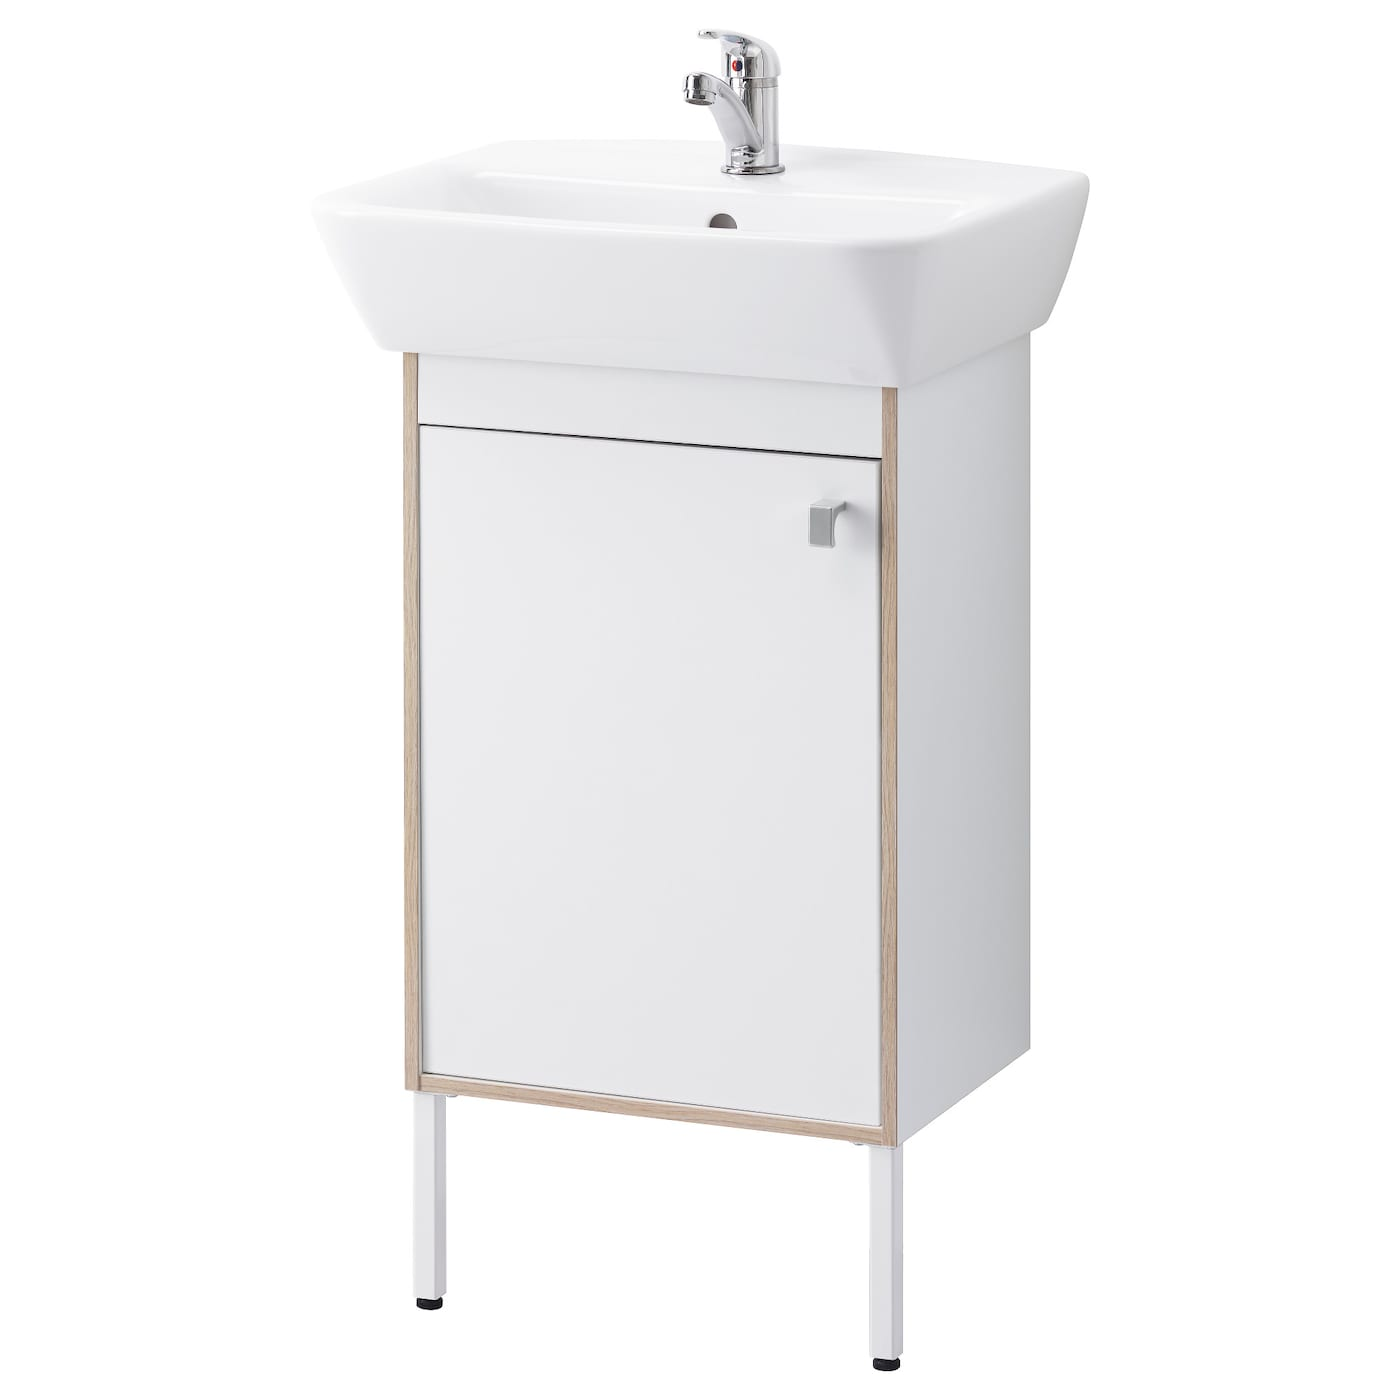 ikea small bathroom cabinets tyngen washbasin cabinet with 1 door white 51x40x88 cm ikea 18849